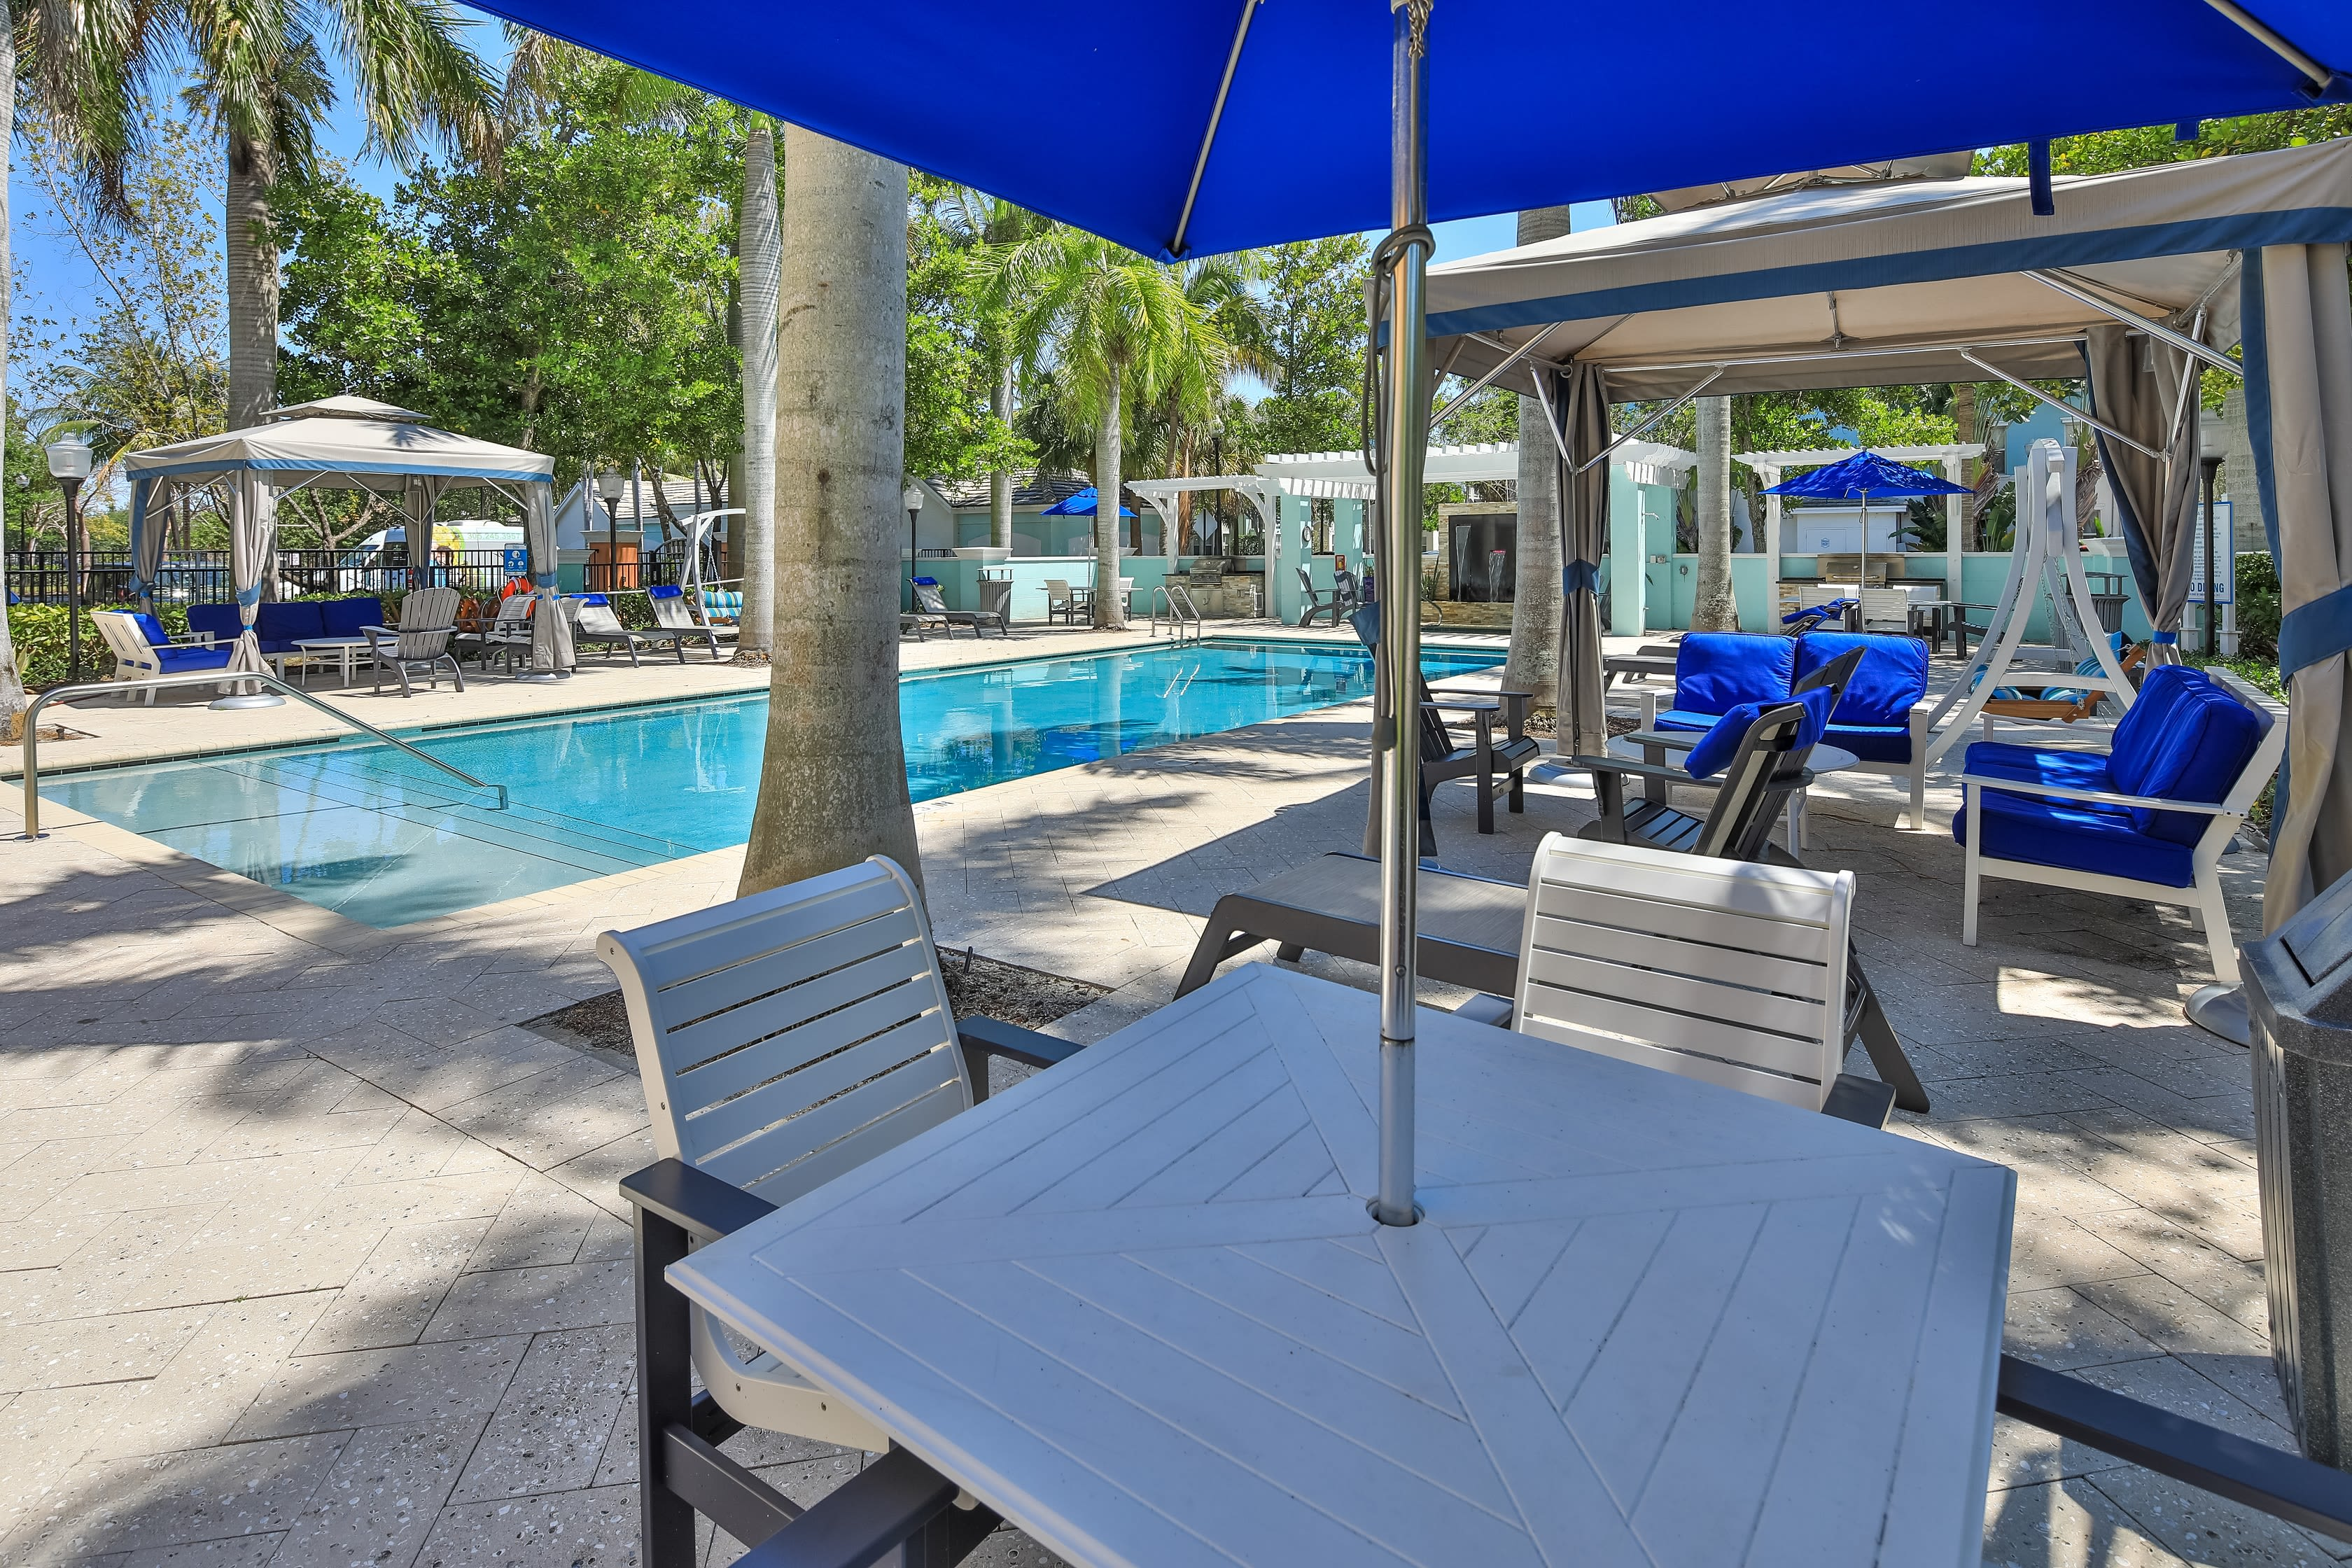 Resort-style swimming pool at The Pearl in Ft Lauderdale, Florida